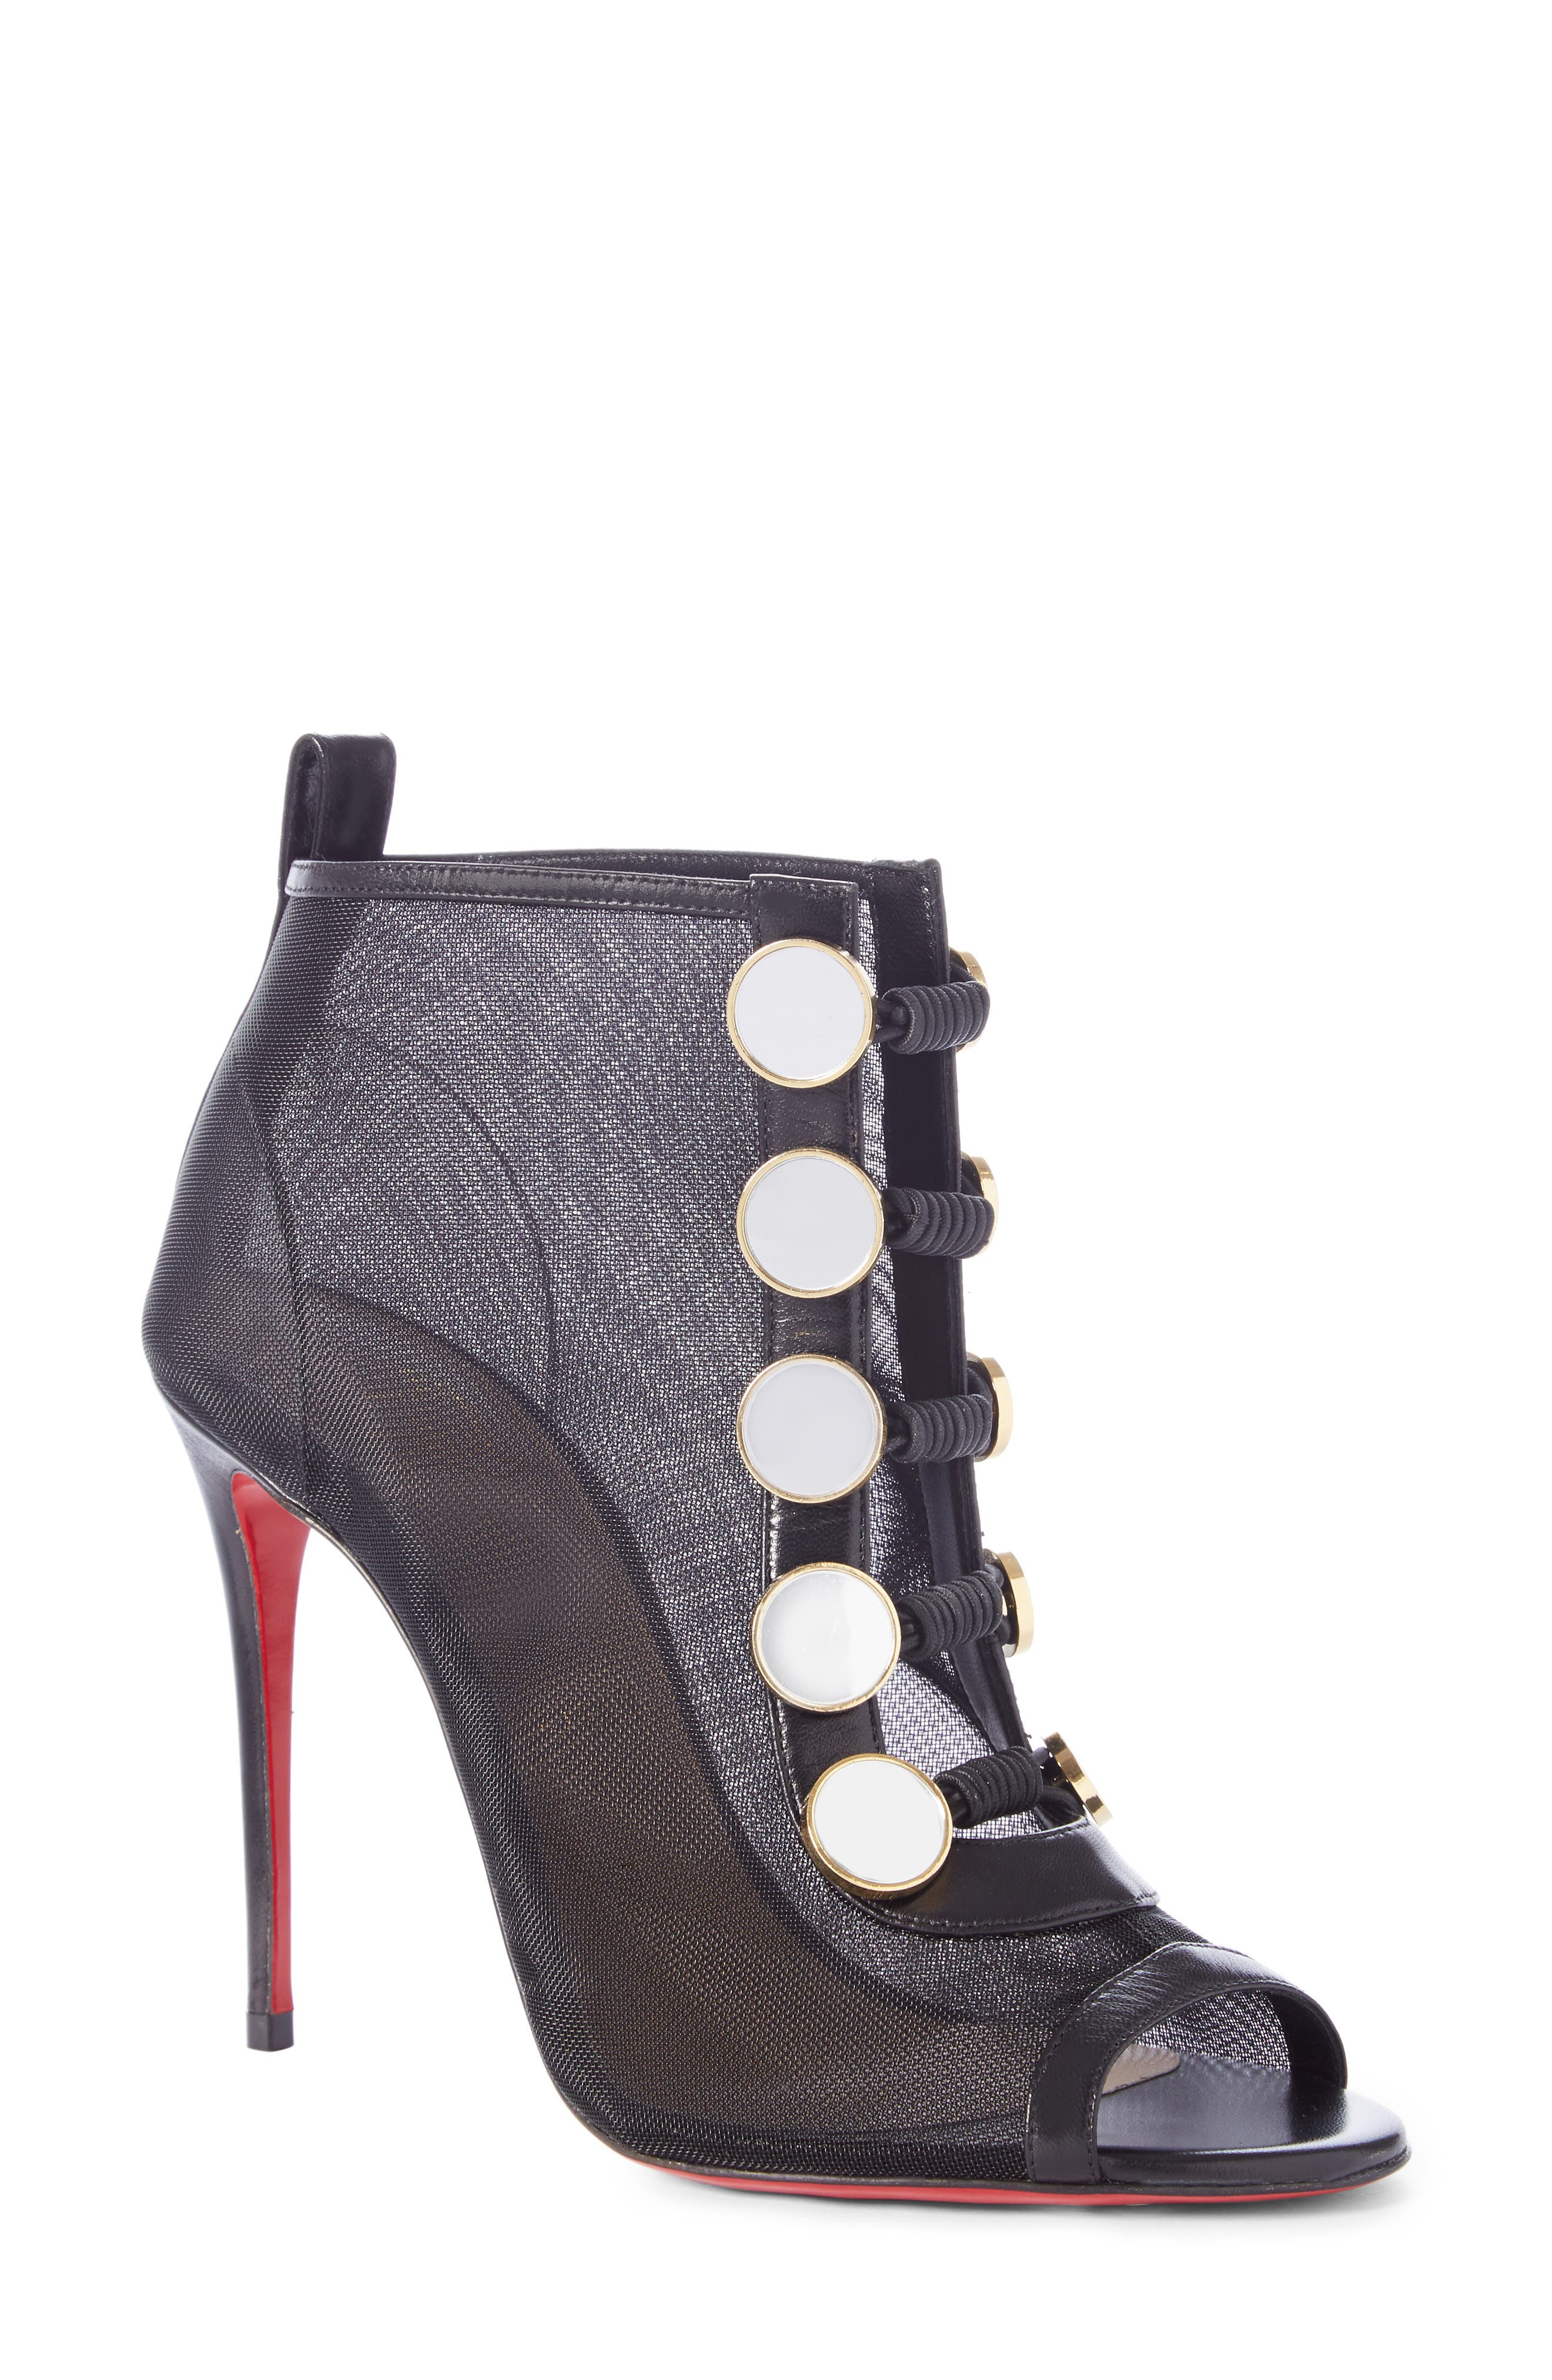 CHRISTIAN LOUBOUTIN Marika Open Toe Bootie, Main, color, BLACK